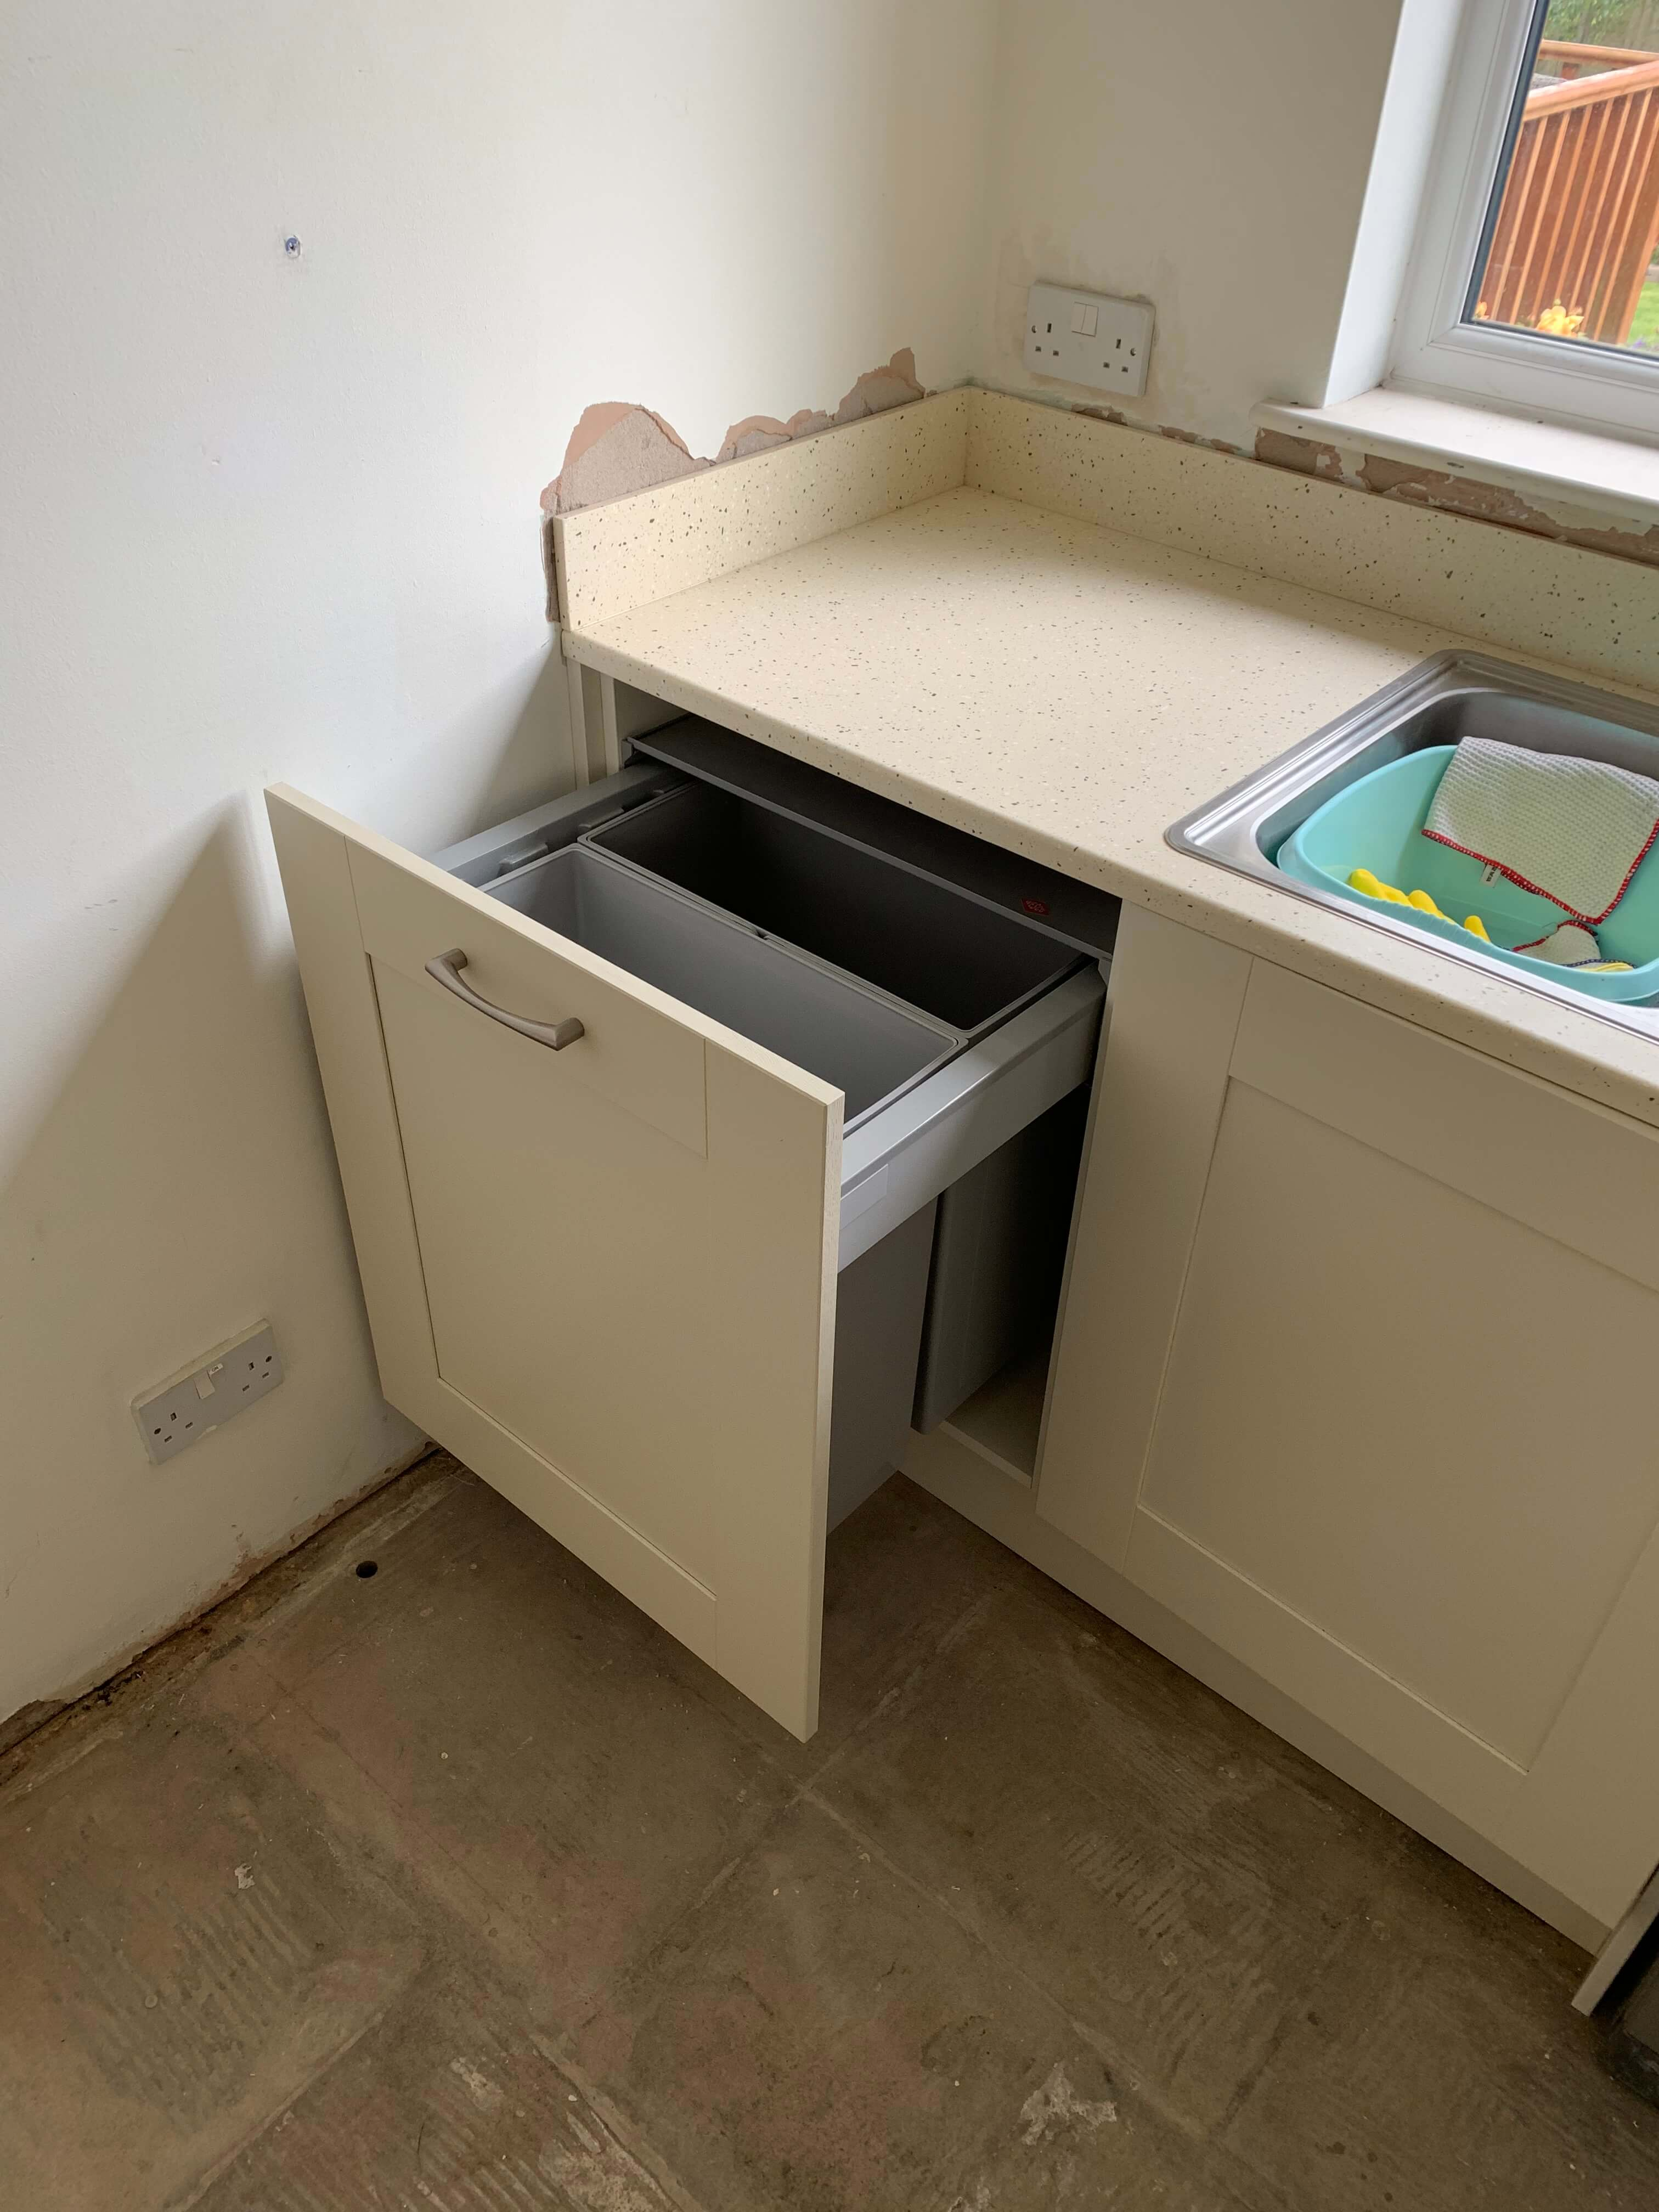 Waste and recycle bin